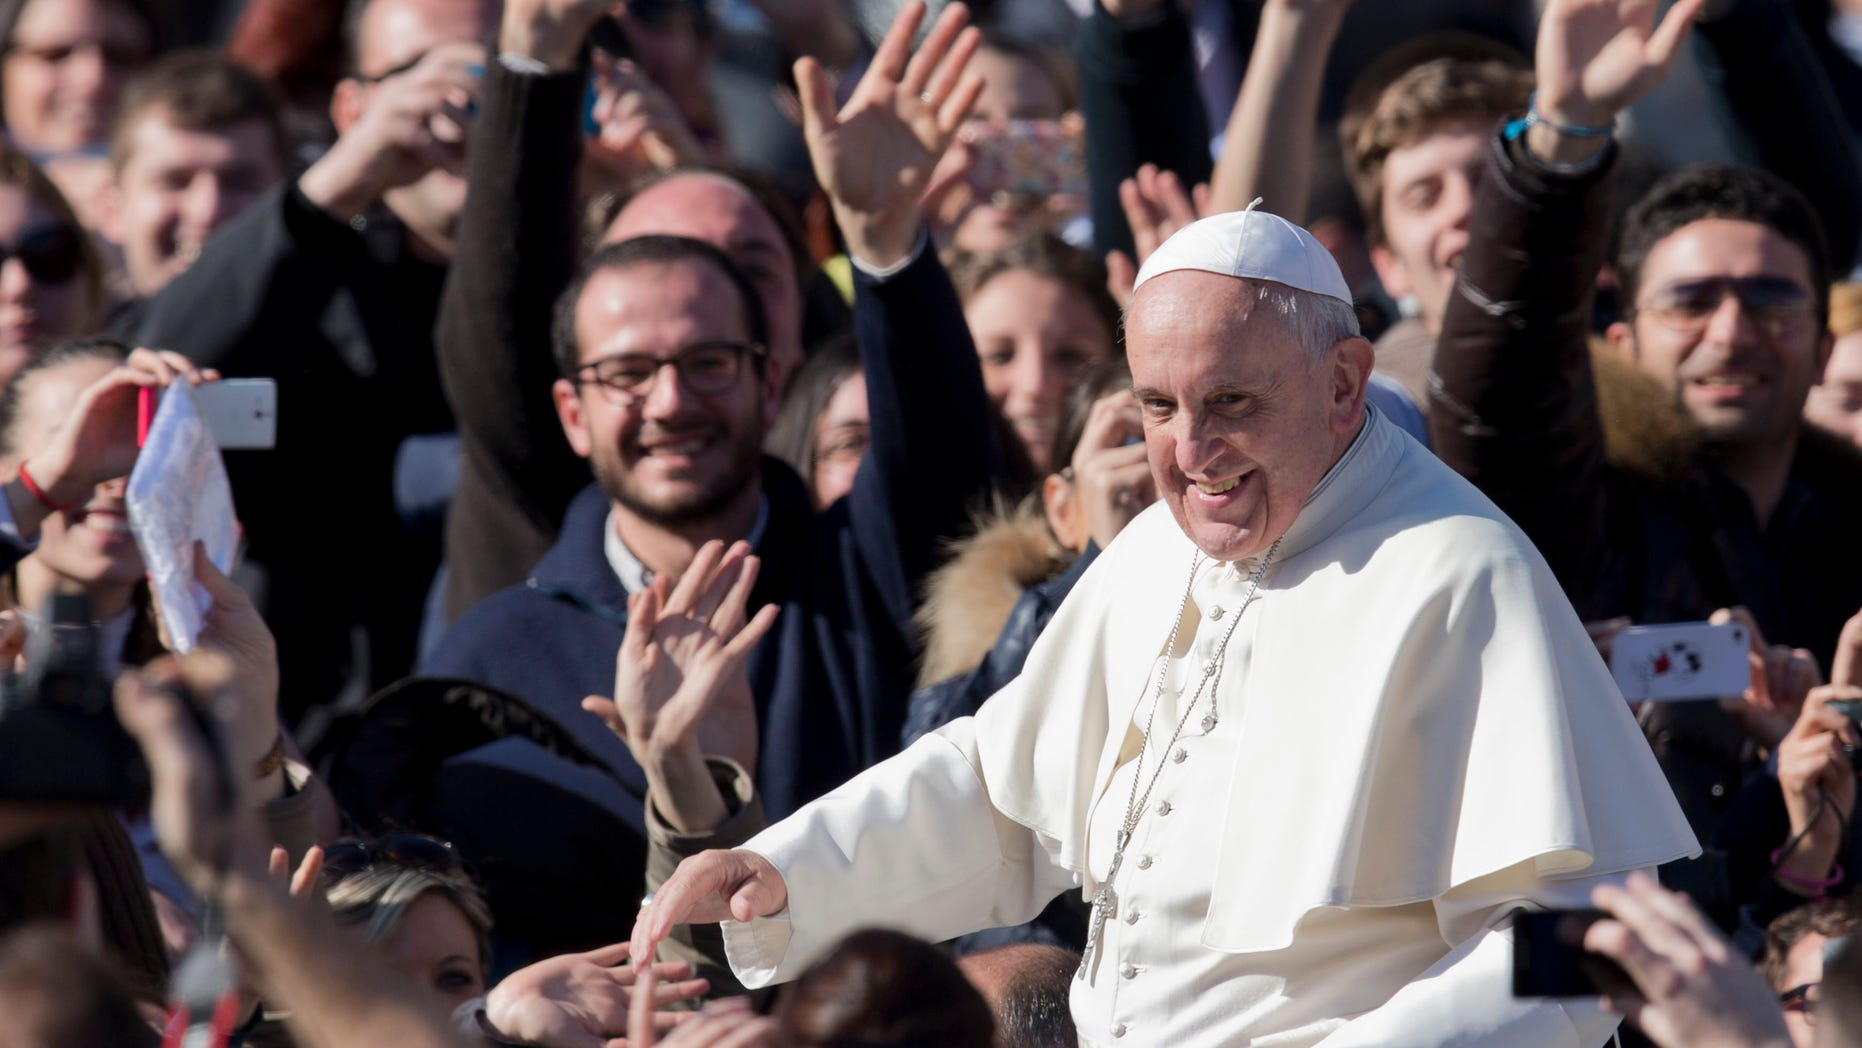 Pope Francis greets faithful as he leaves  St. Peter's Square at the Vatican, Friday, Feb. 14, 2014. Pope Francis met a group of engaged couples on Valentine's Day. (AP)